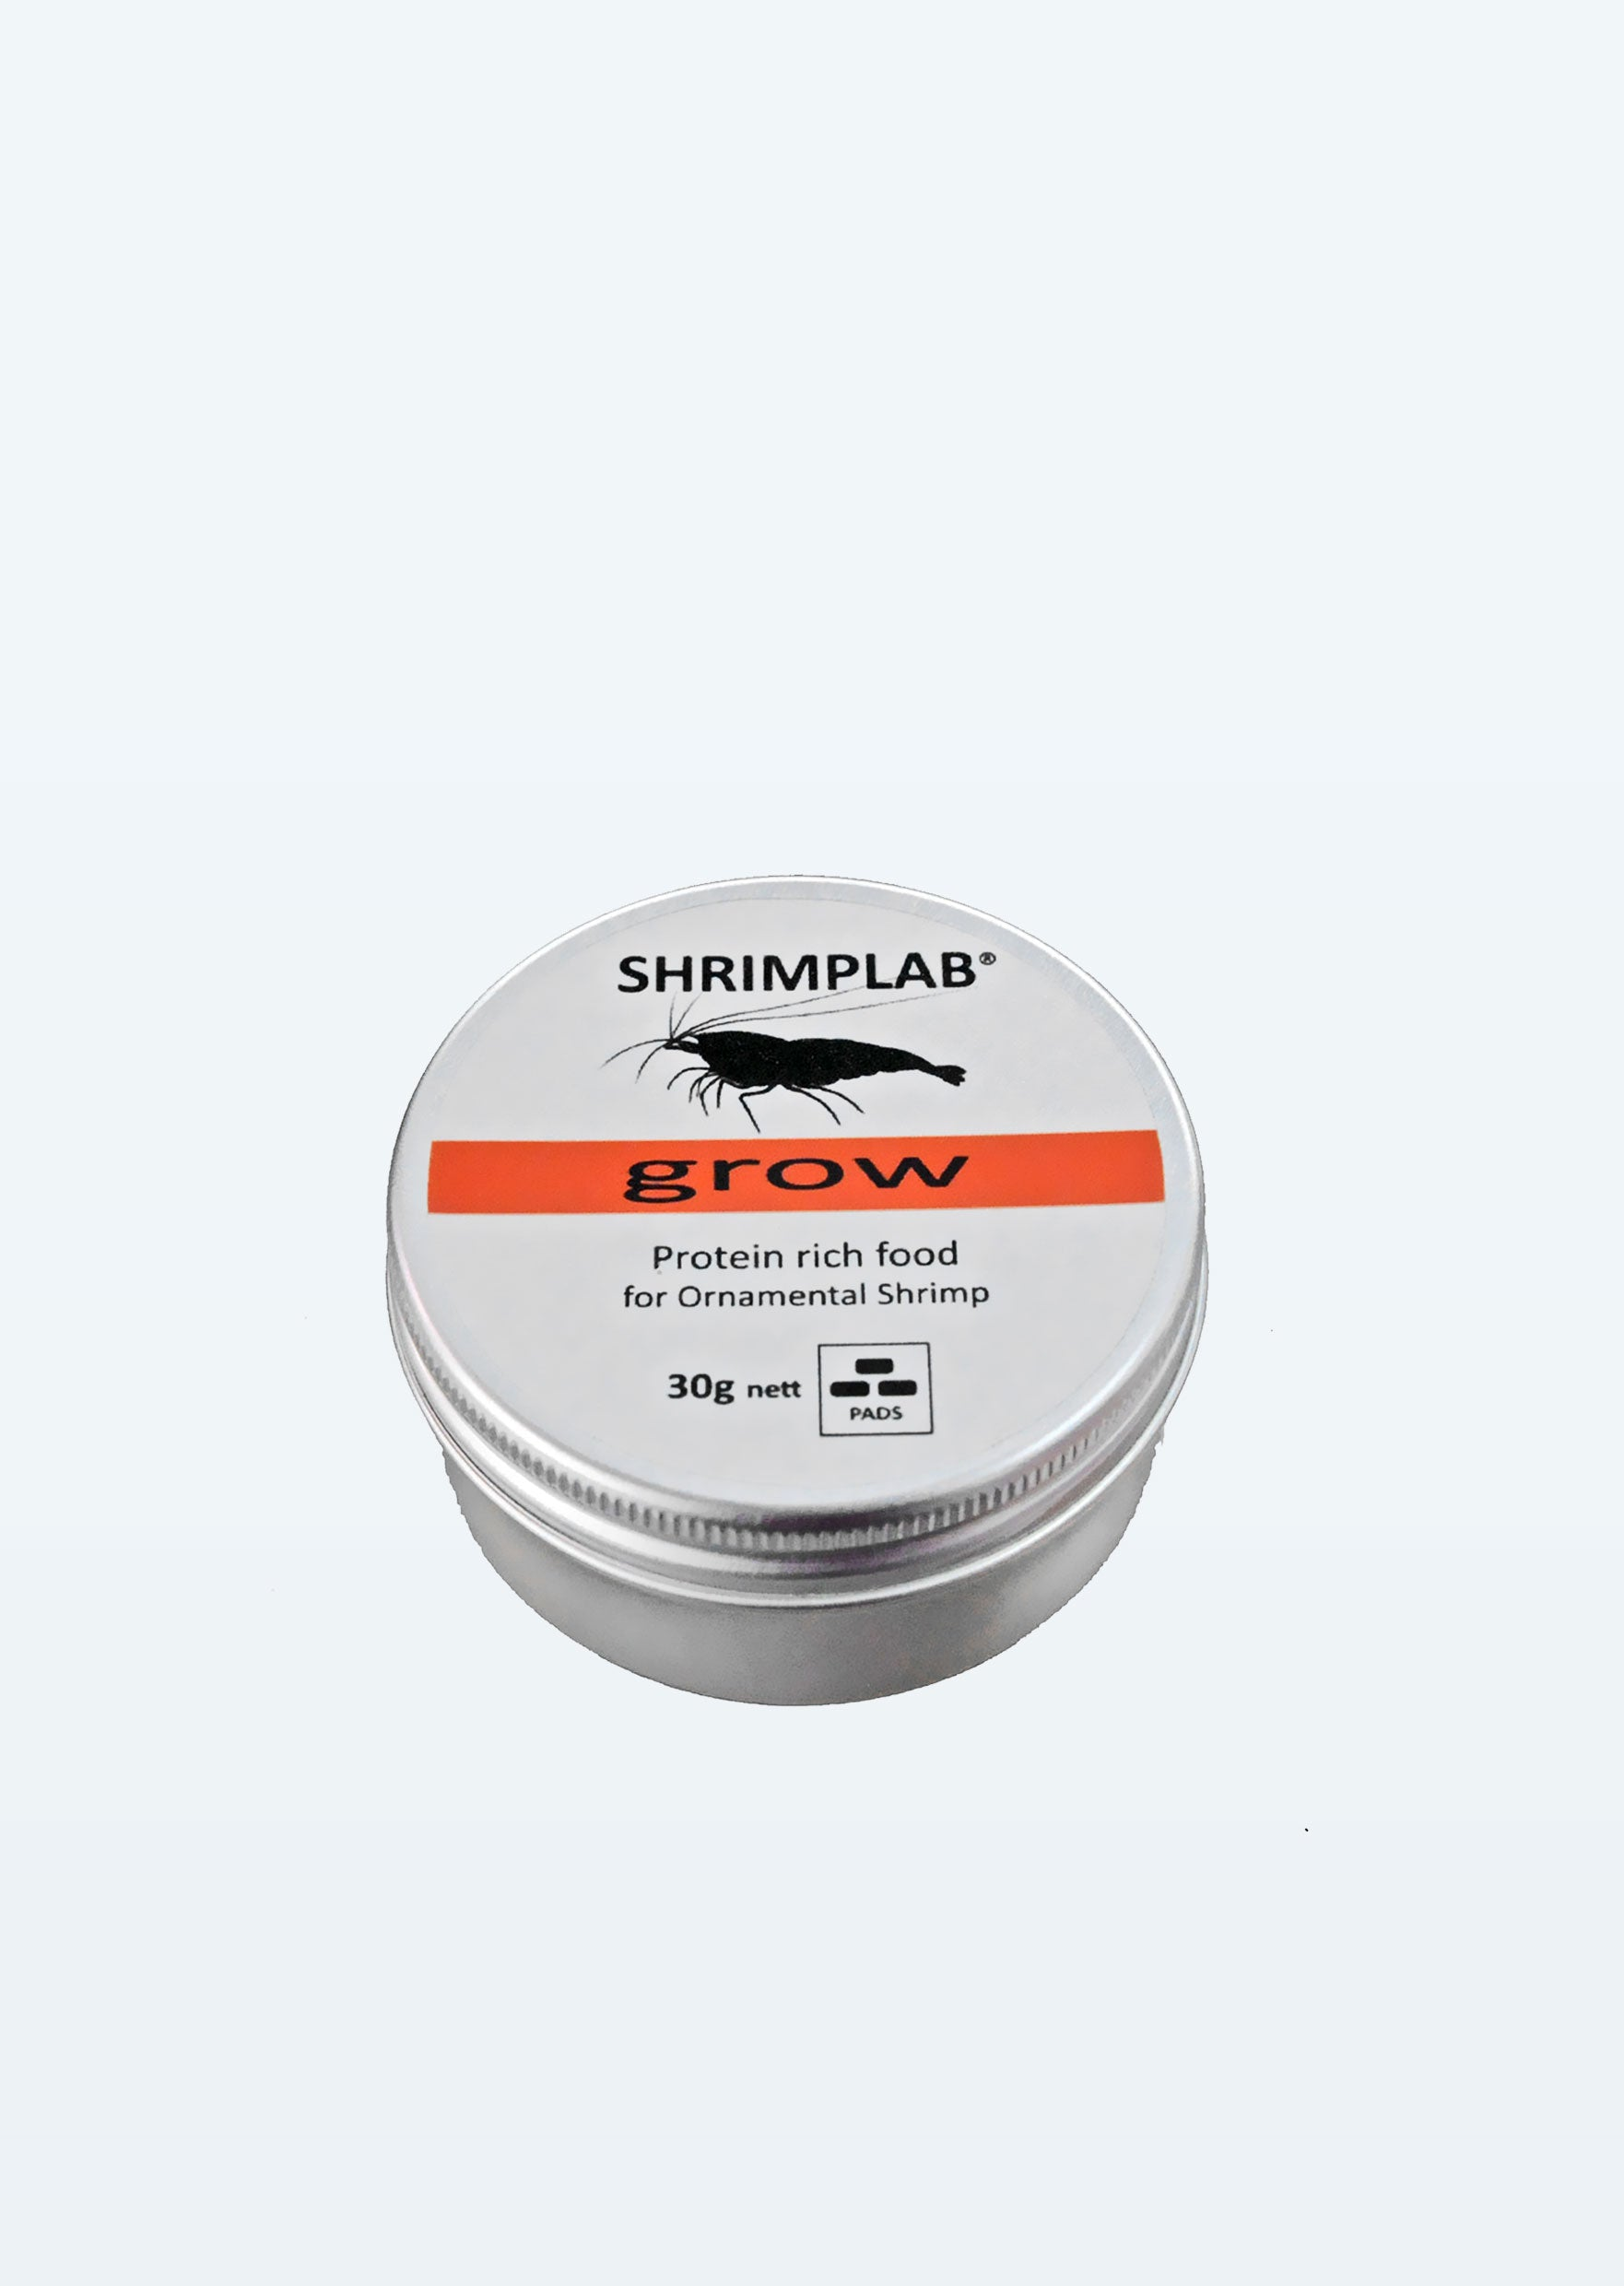 Shrimplab Grow Pads